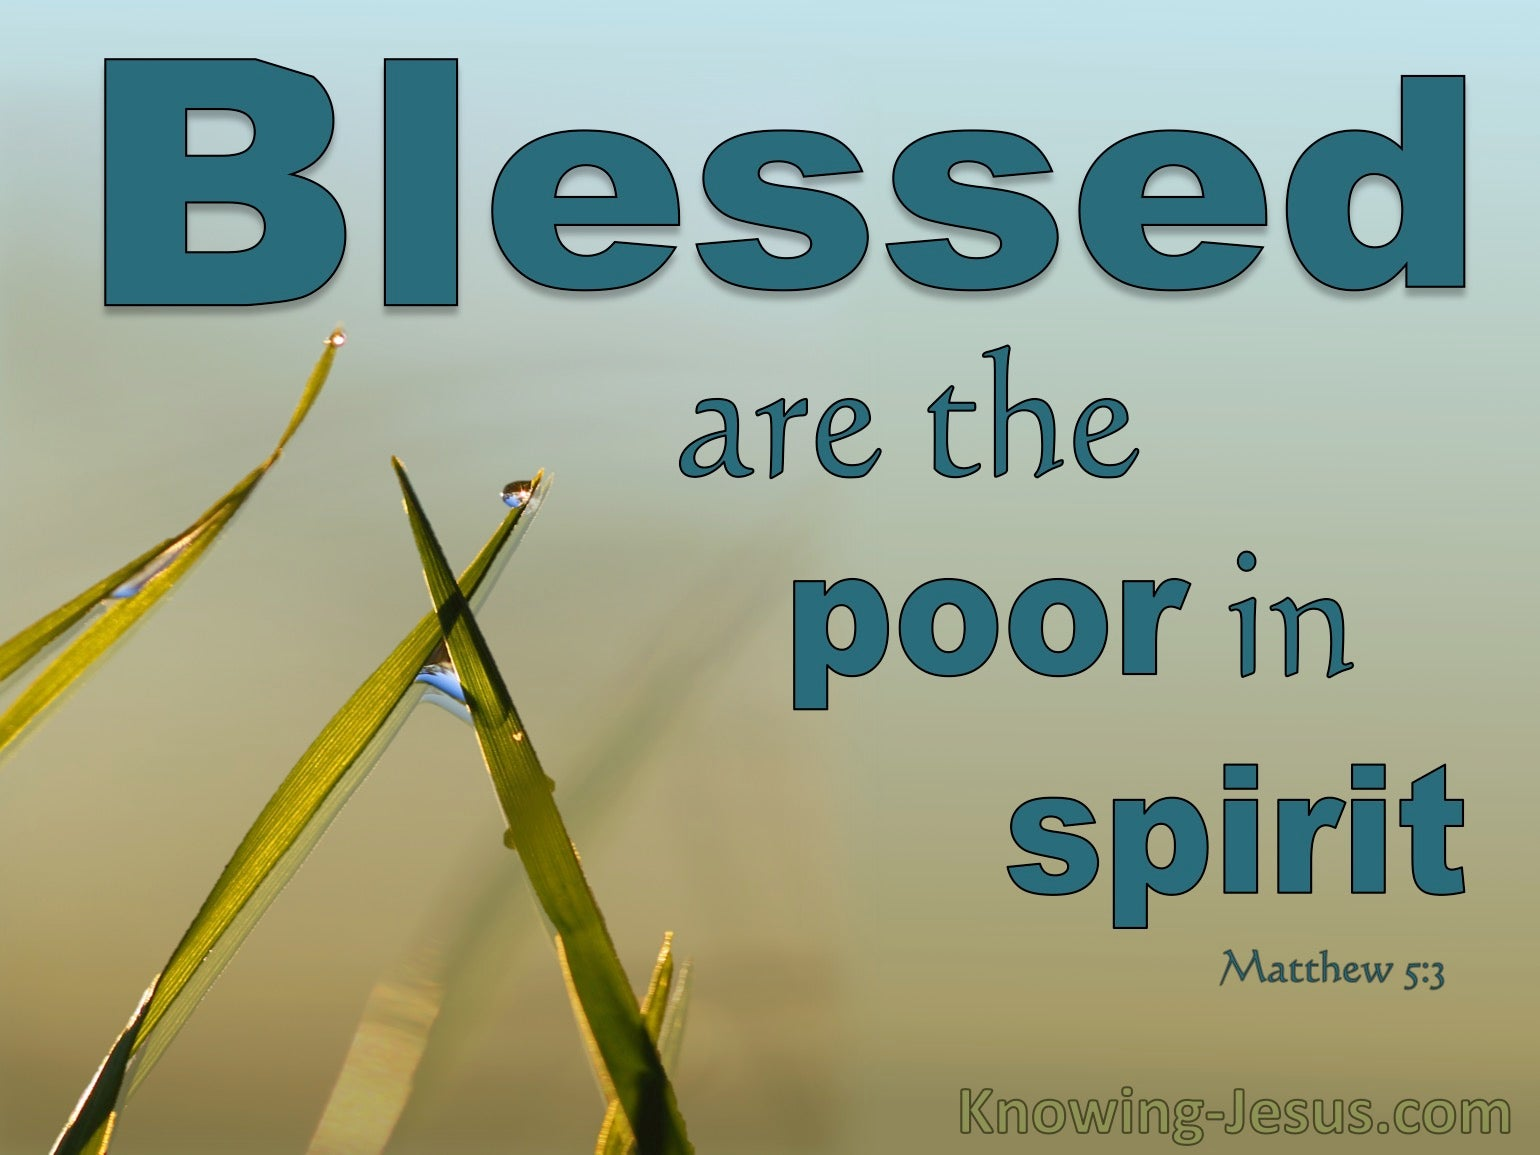 What Does Matthew 5:3 Mean?